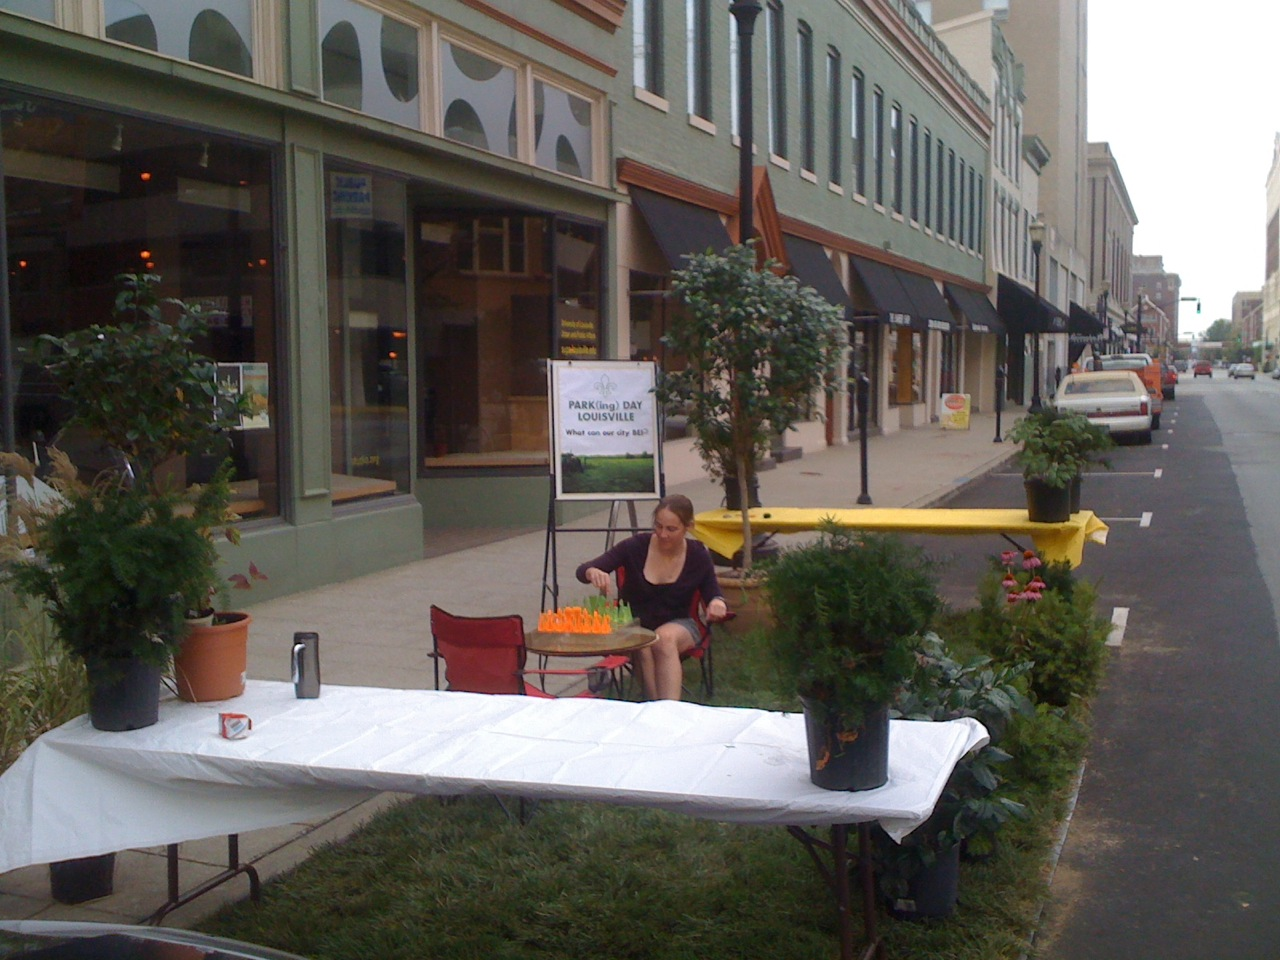 Park(ing) Day in Louisville (Courtesy Urban Design Studio)